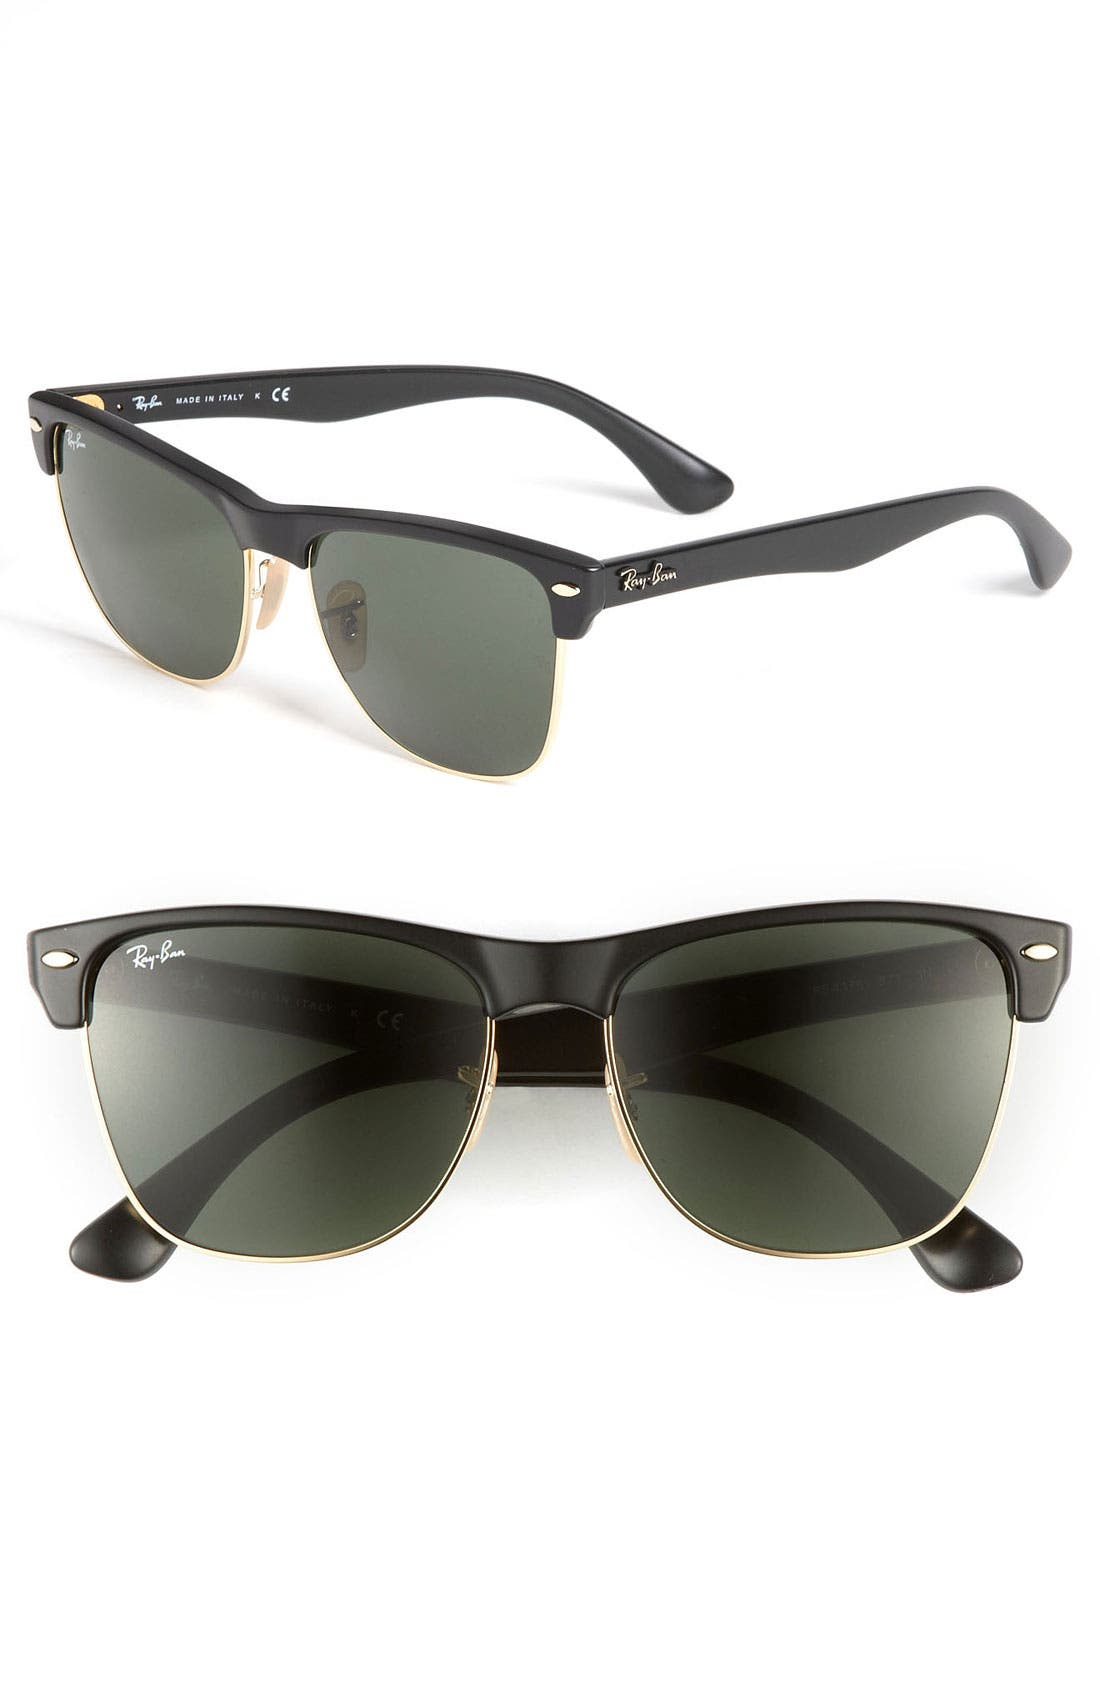 Highstreet 57mm Sunglasses,                         Main,                         color, DEMI BLACK/ GREEN SOLID